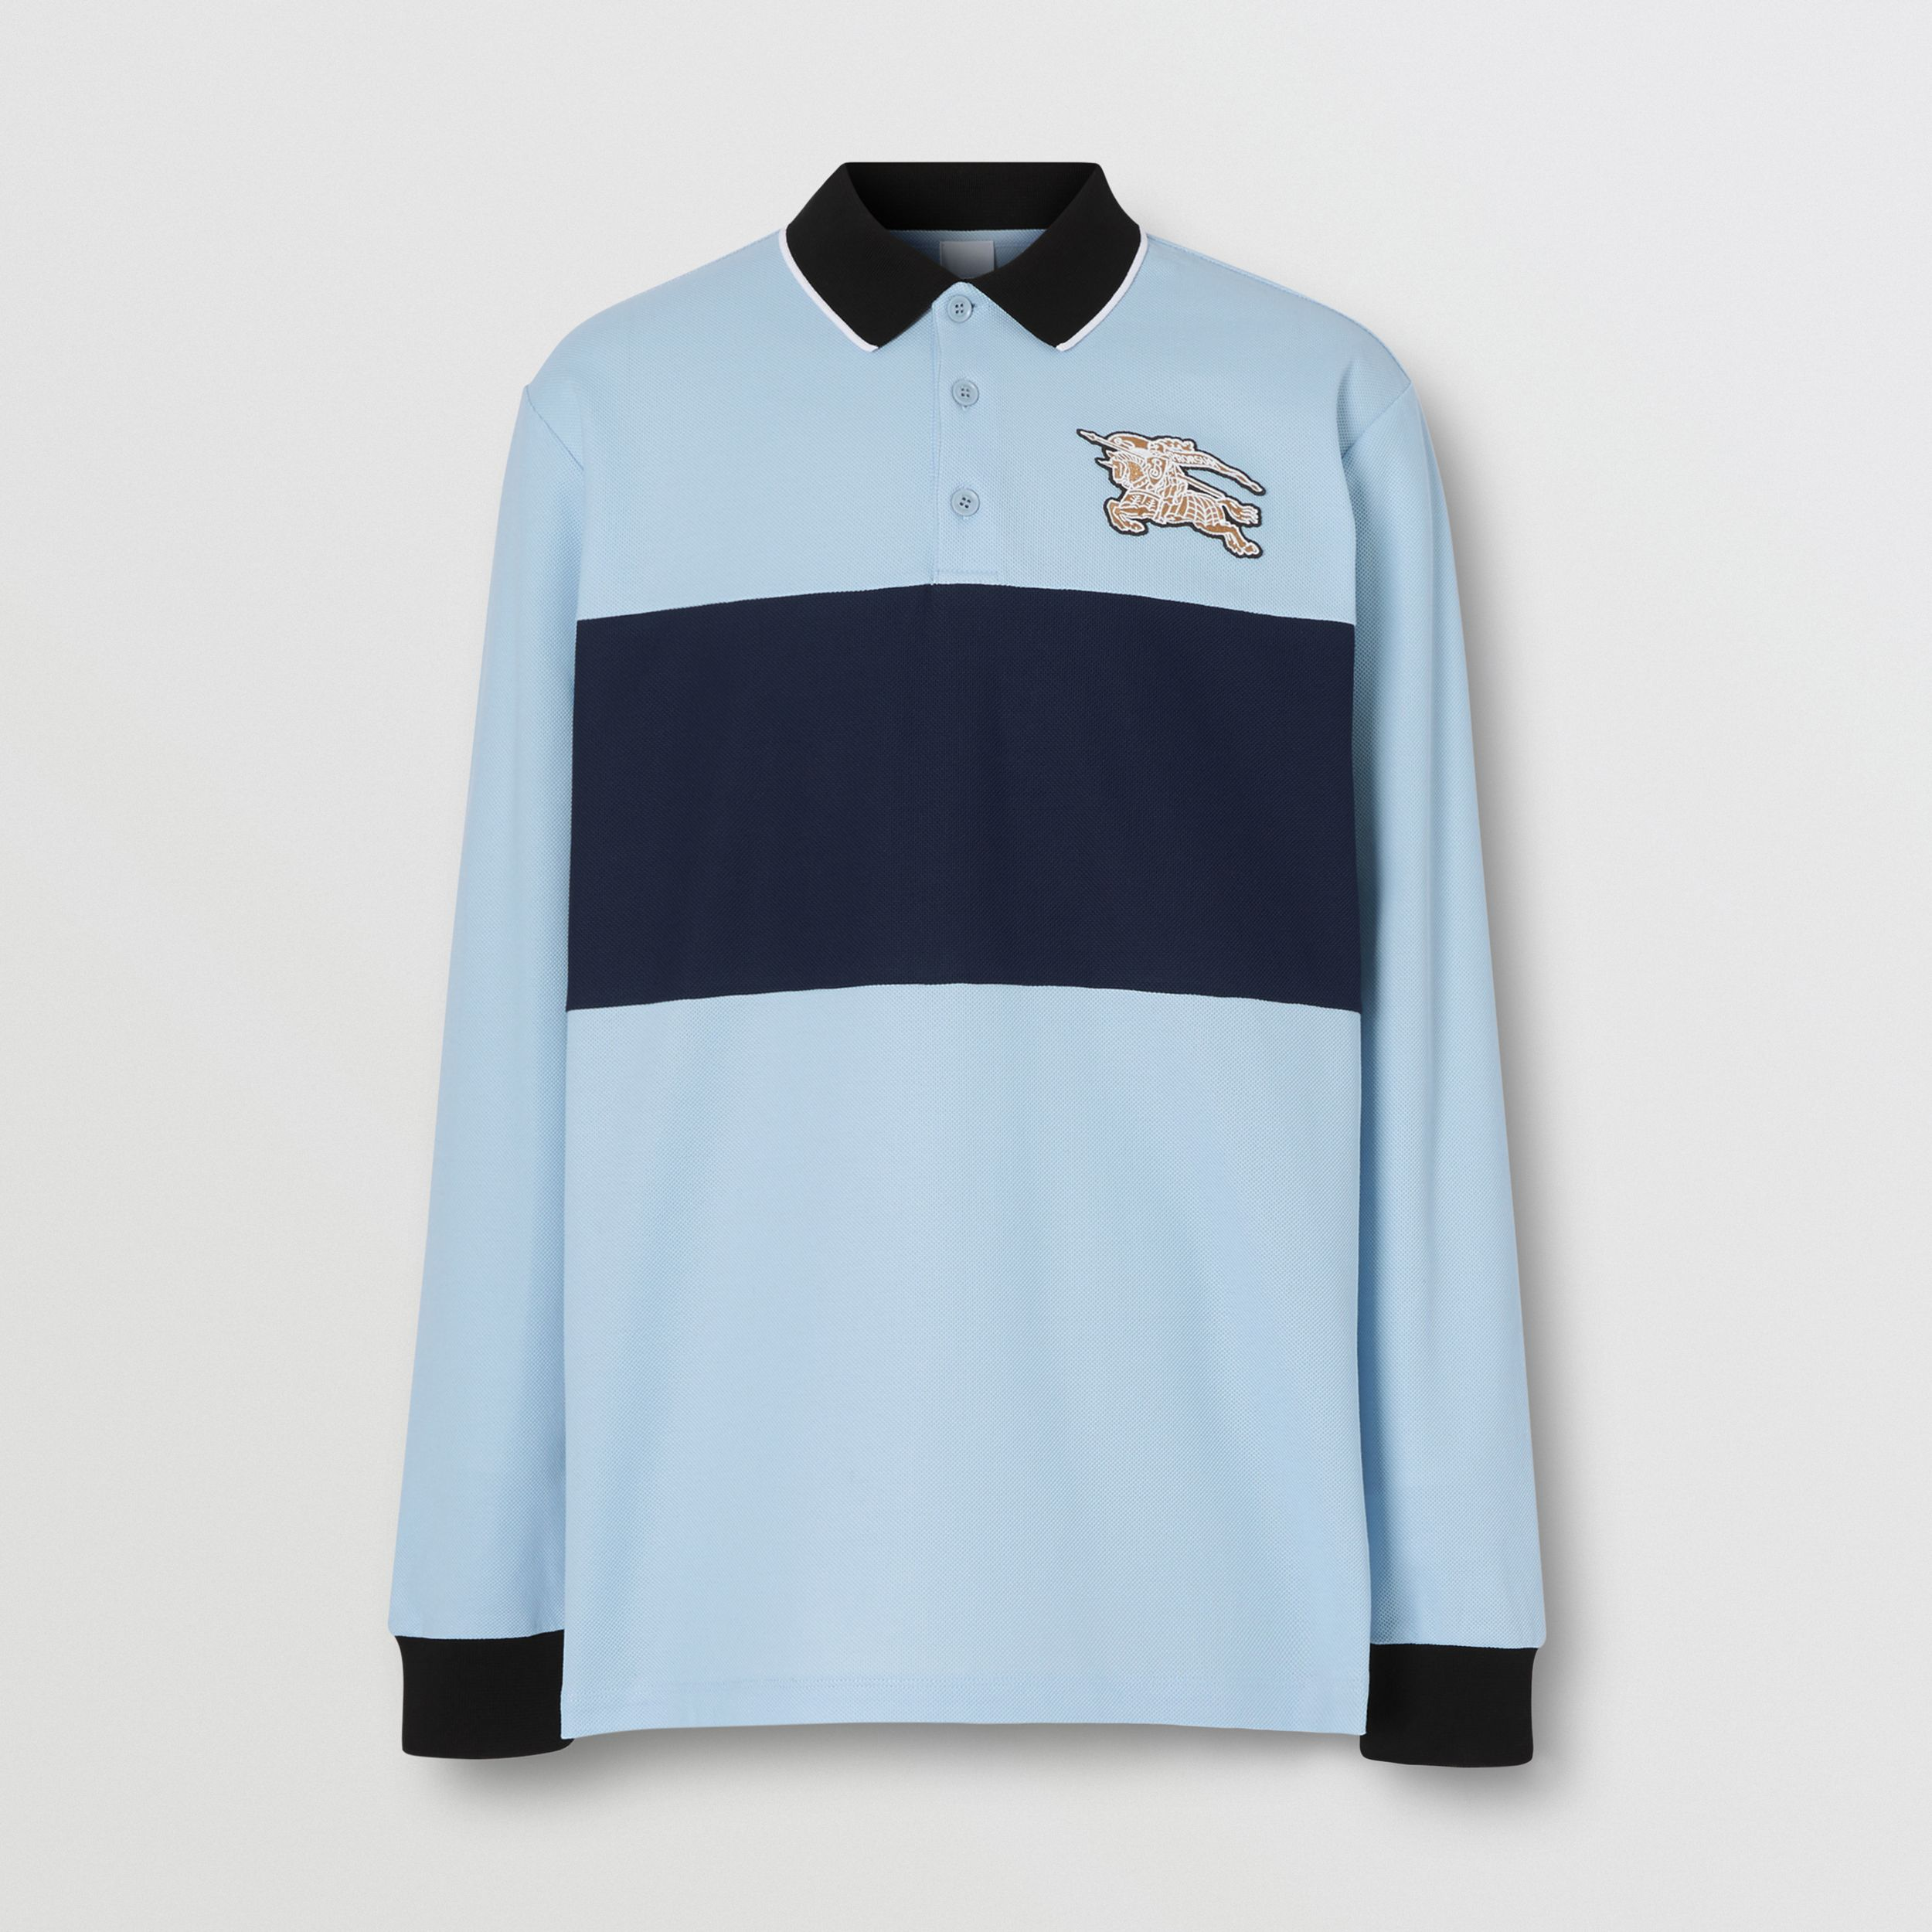 Long-sleeve Logo Graphic Cotton Piqué Polo Shirt in Pale Blue - Men | Burberry - 4